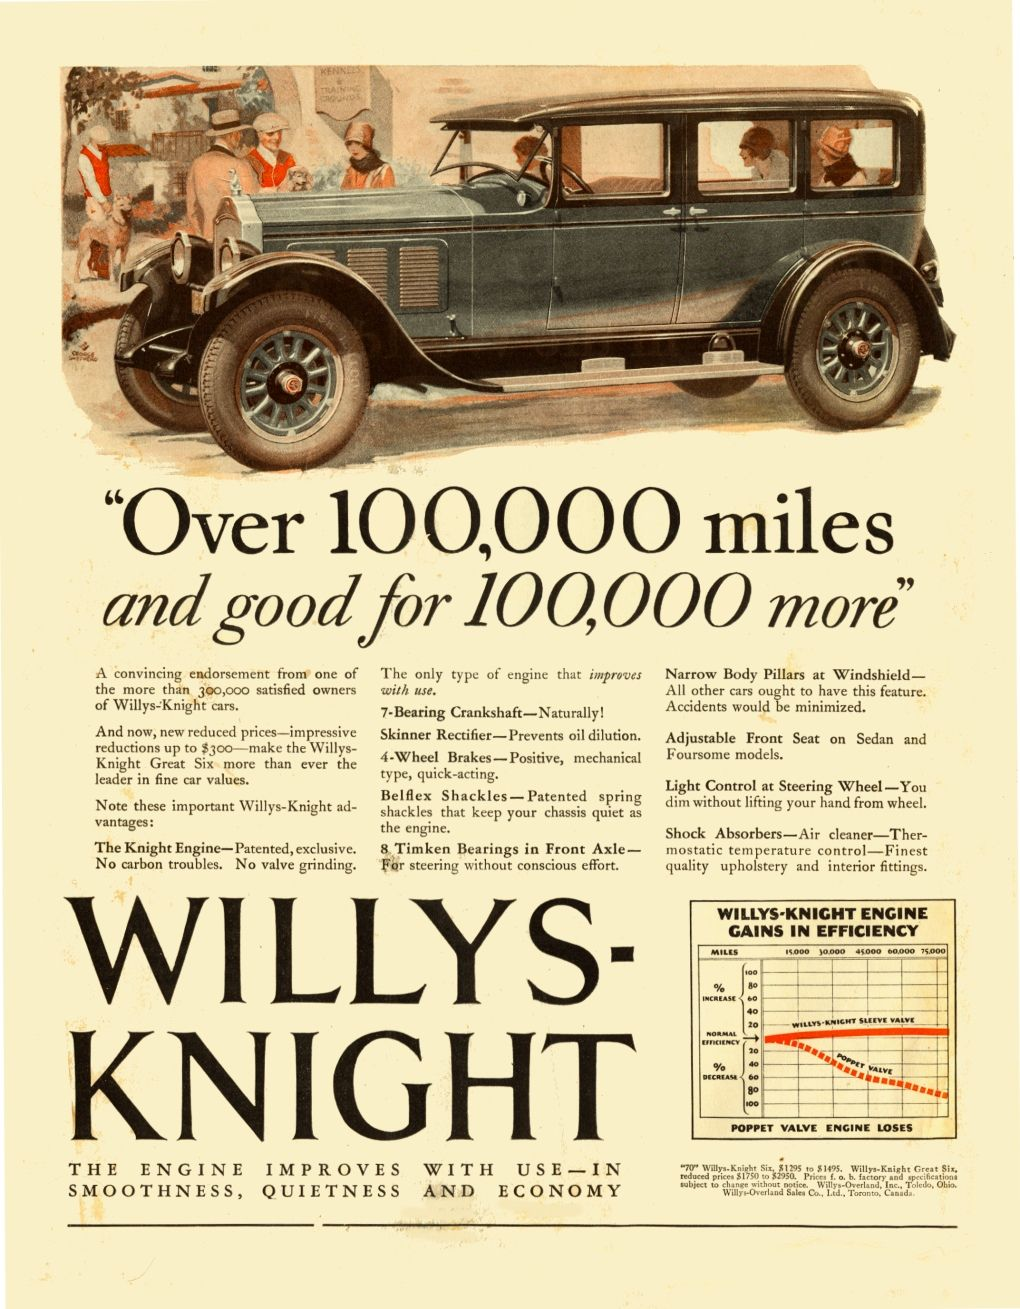 Willys Knight 1927 | Vintage car ads | Pinterest | Ads, Cars and Car ...